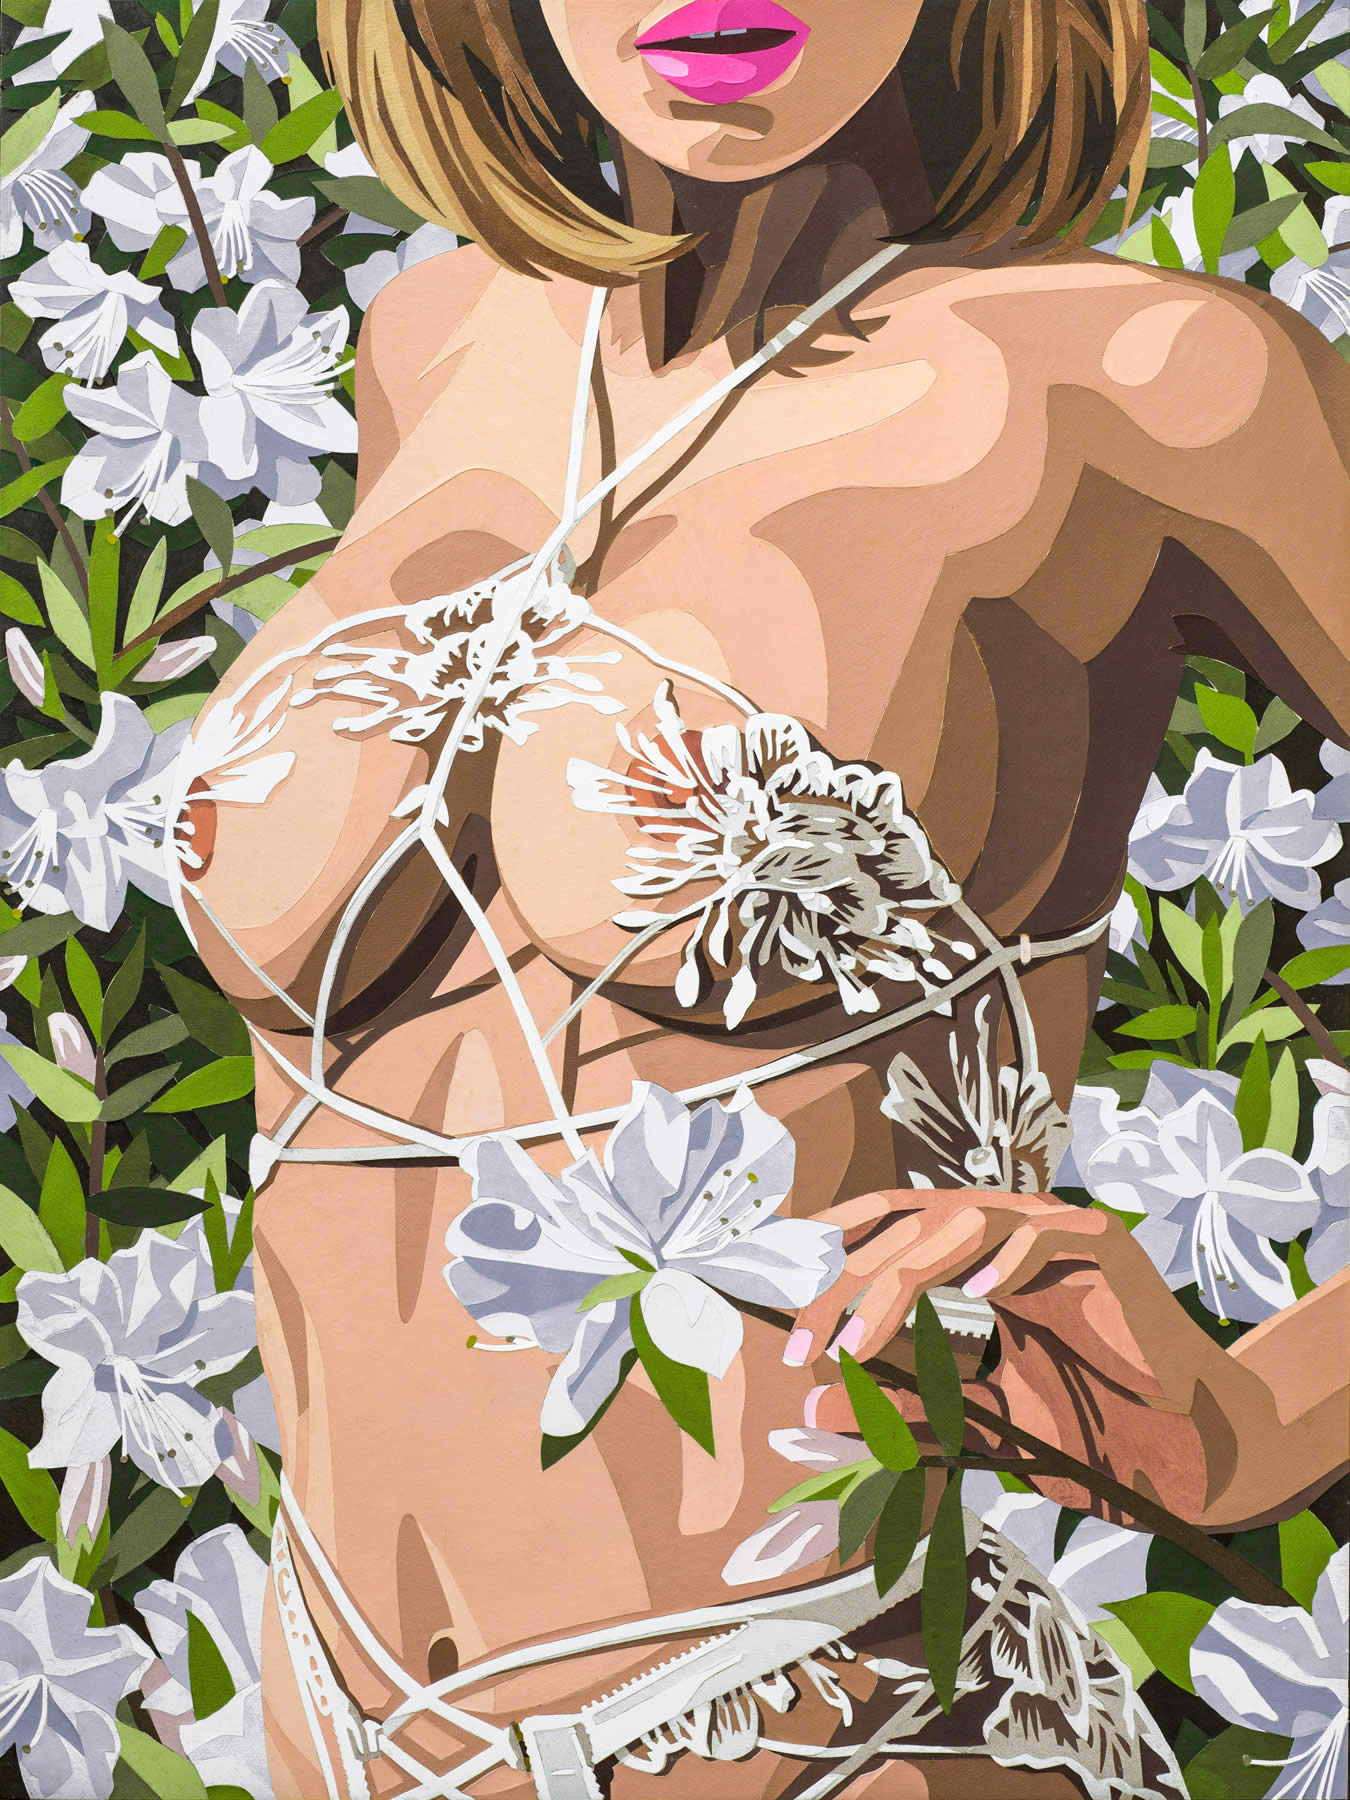 Woman in Lingerie with Azaleas